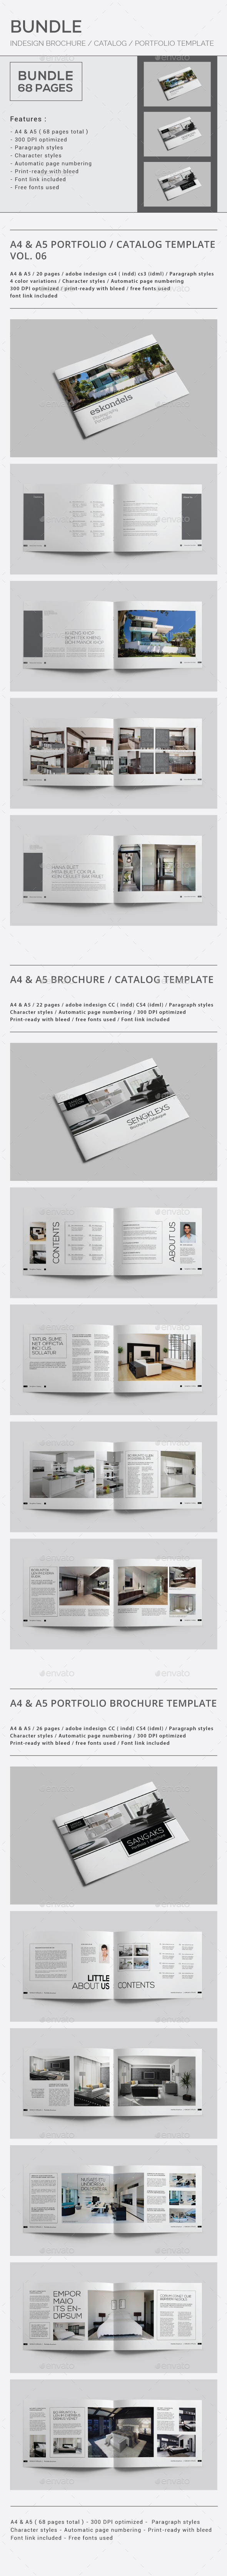 Indesign Brochure Catalog / Portfolio Bundle - Brochures Print Templates